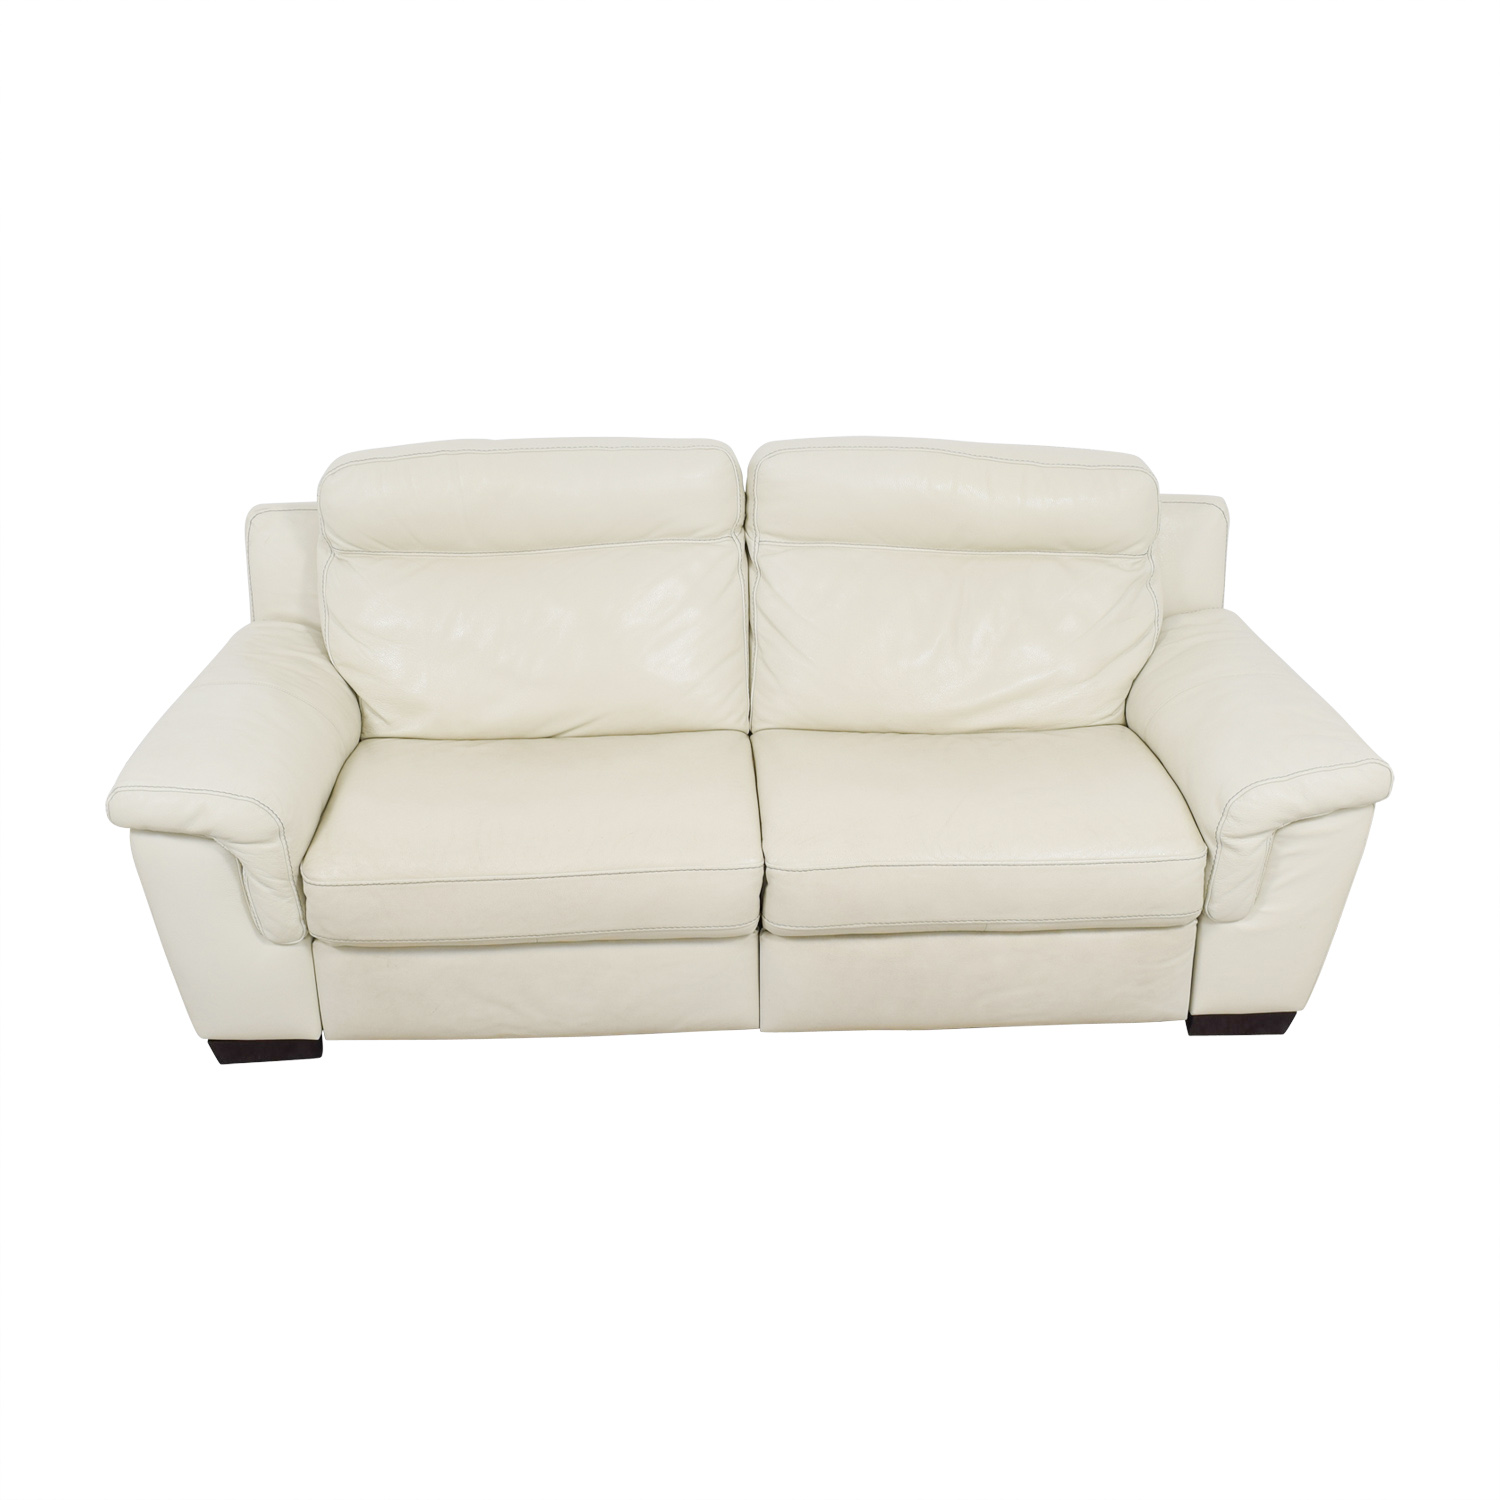 damacio reclining and with leather sofa ashley recliner white power furniture inspiration ideas cream